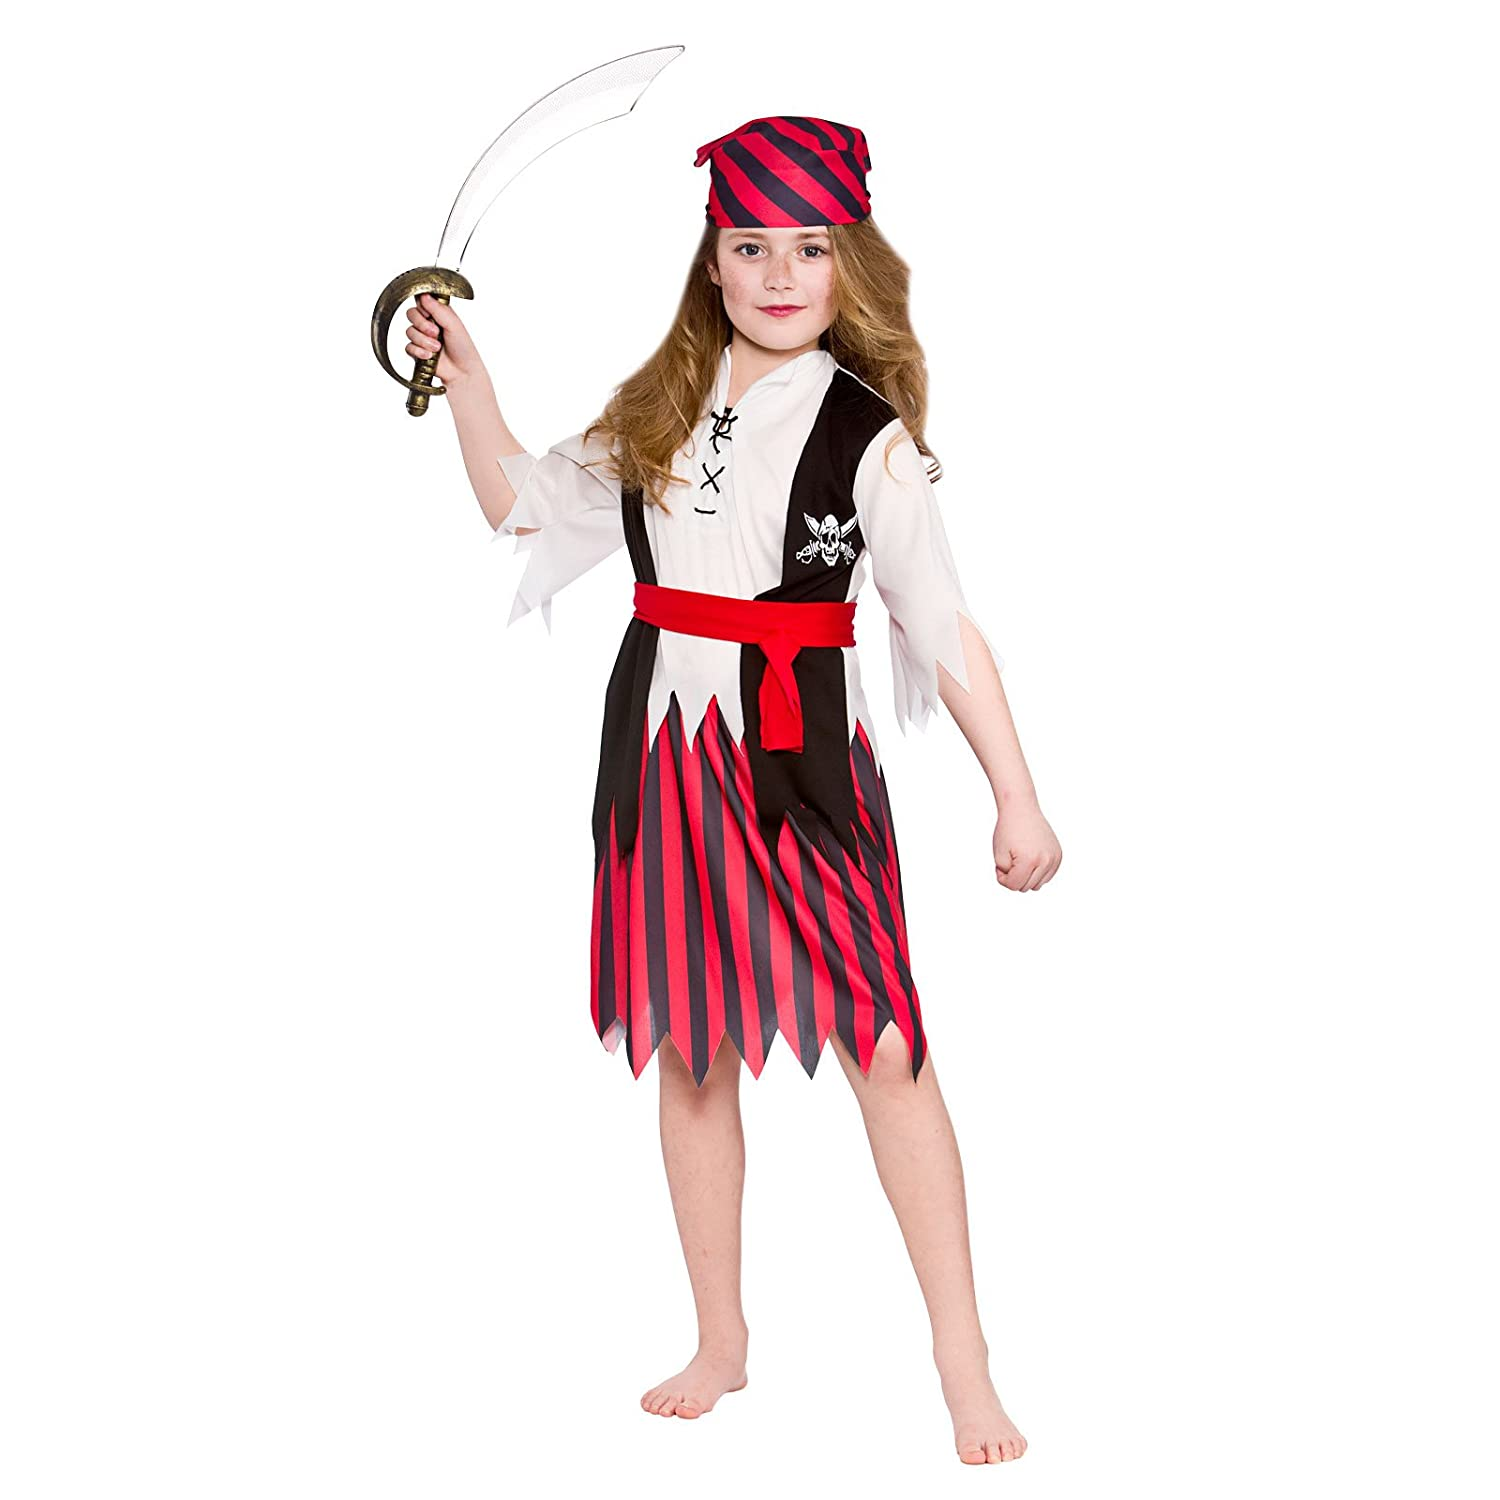 Rubies Official Princess of the Seas Costume Girls Large Age 8-10